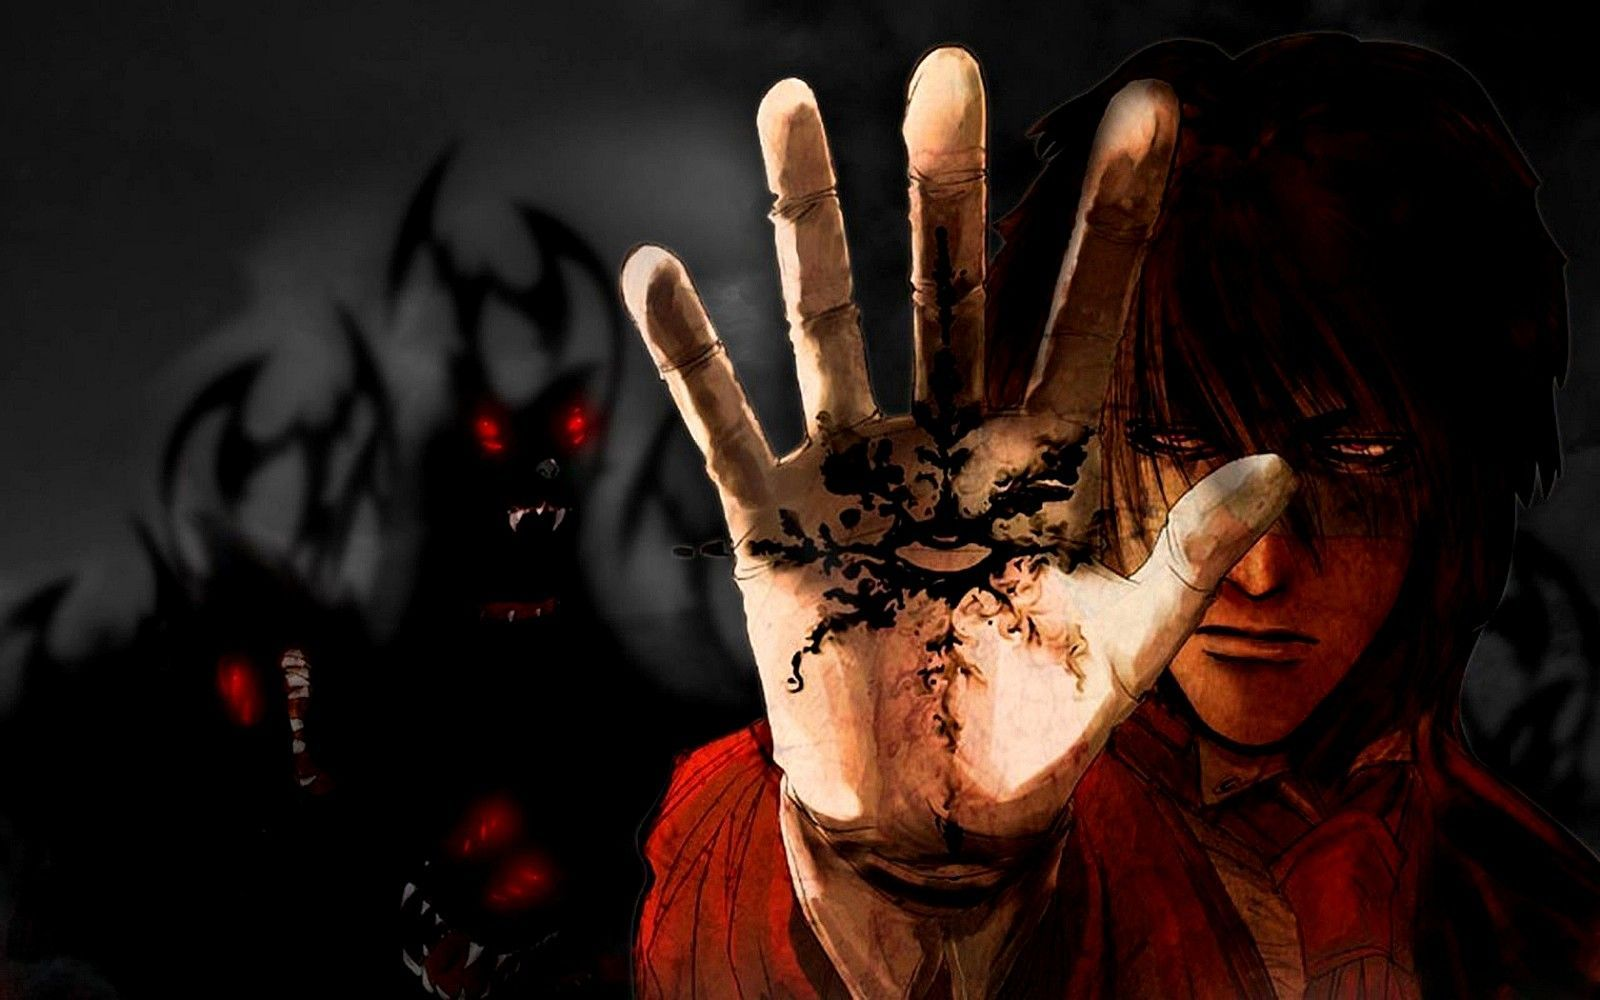 1600x1000 Horror Anime | HD Horror Anime Wallpaper | Manga Wallpaper | creepy ...